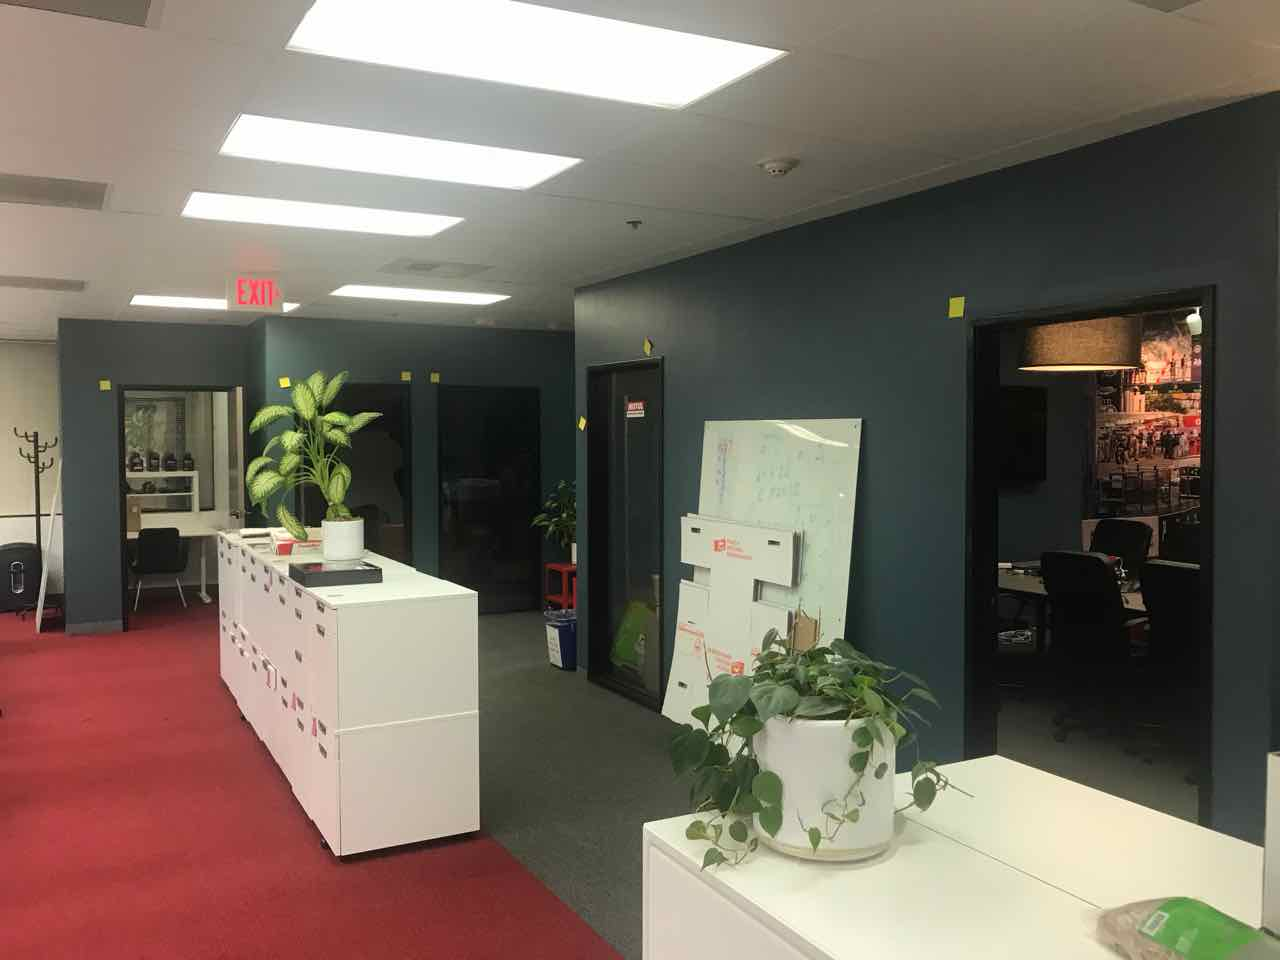 Office redesign and remodel, including new conference rooms, new lighting, new ceiling, new doors, new carpet and finishes.